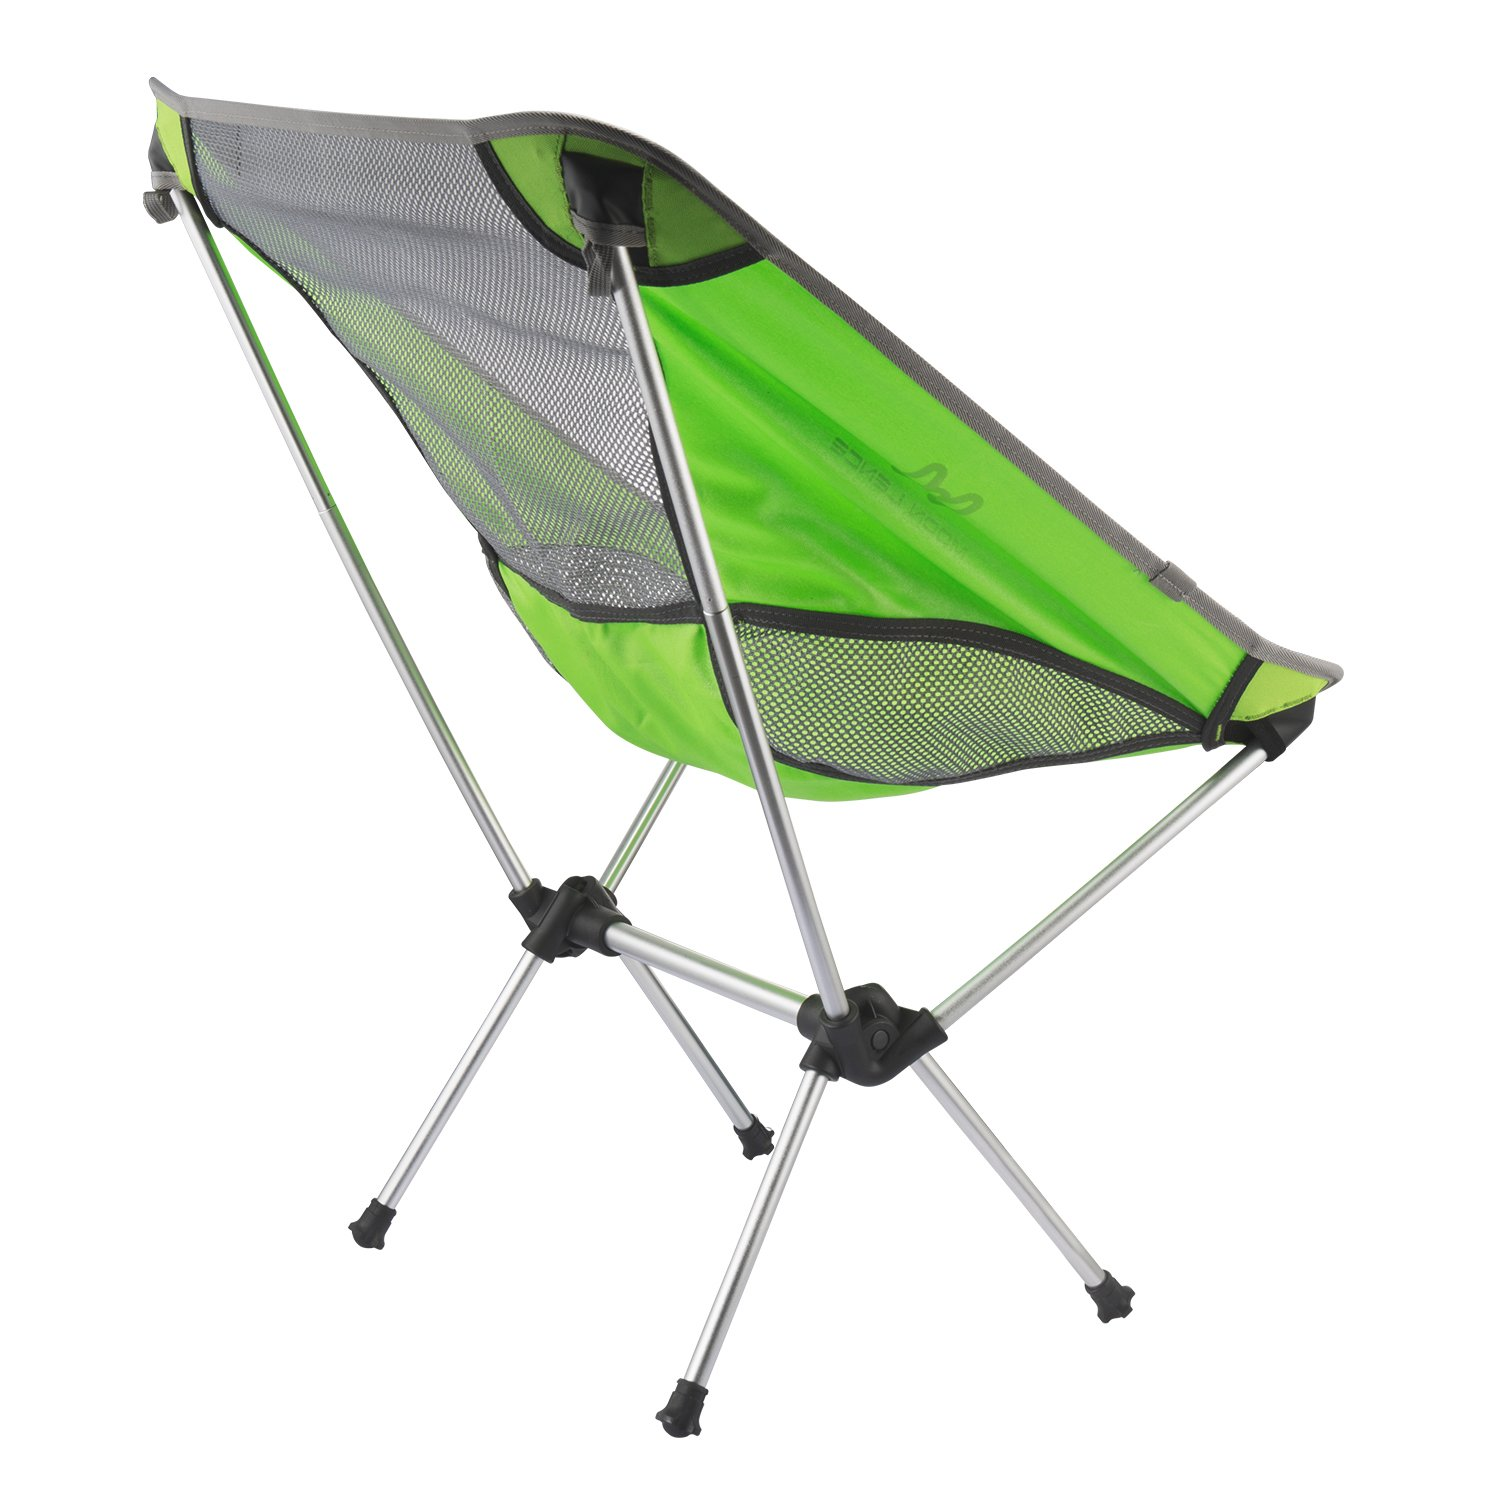 Amazon Moon Lence Ultralight Portable Folding Camping